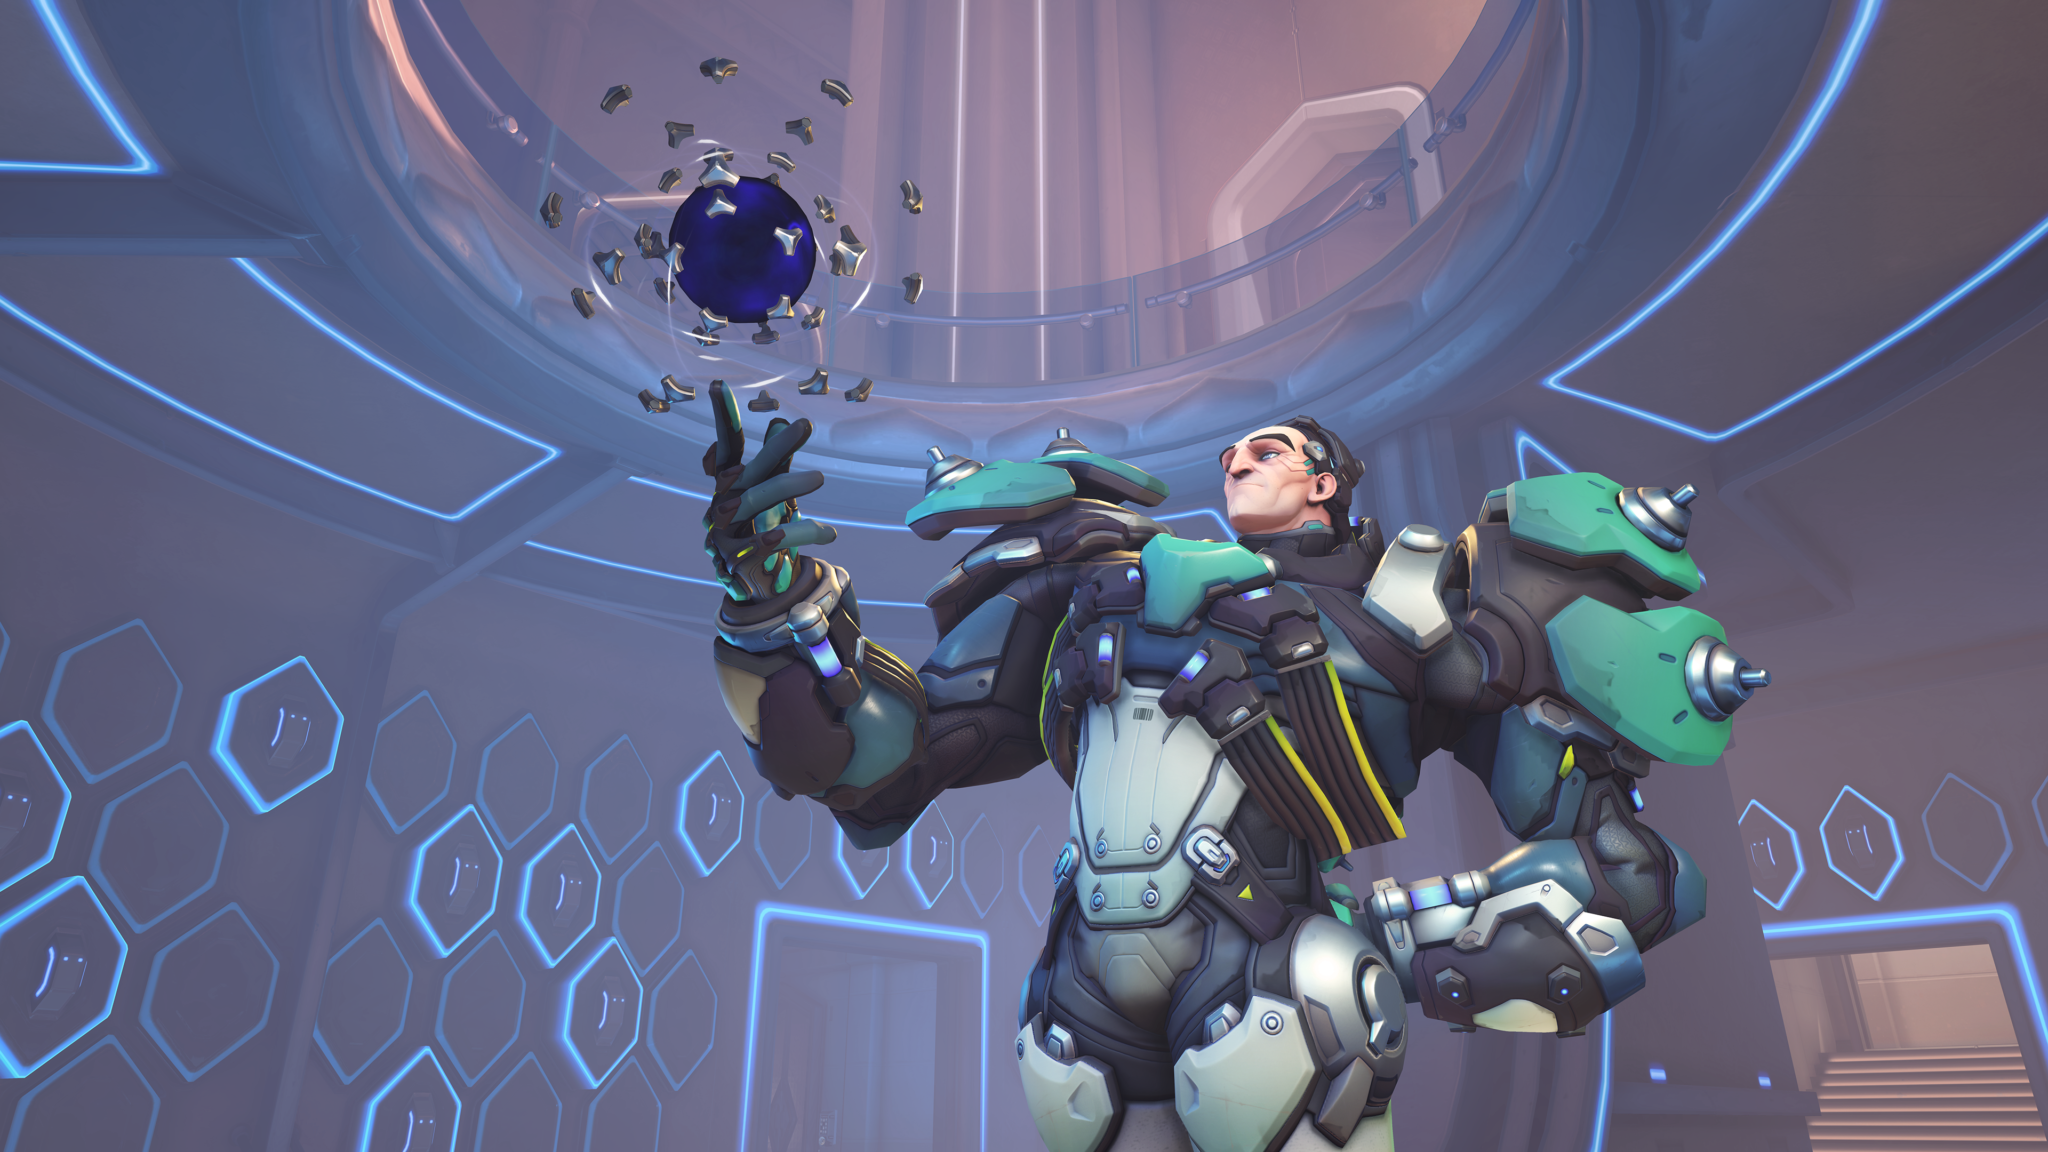 Sigma poses in Overwatch